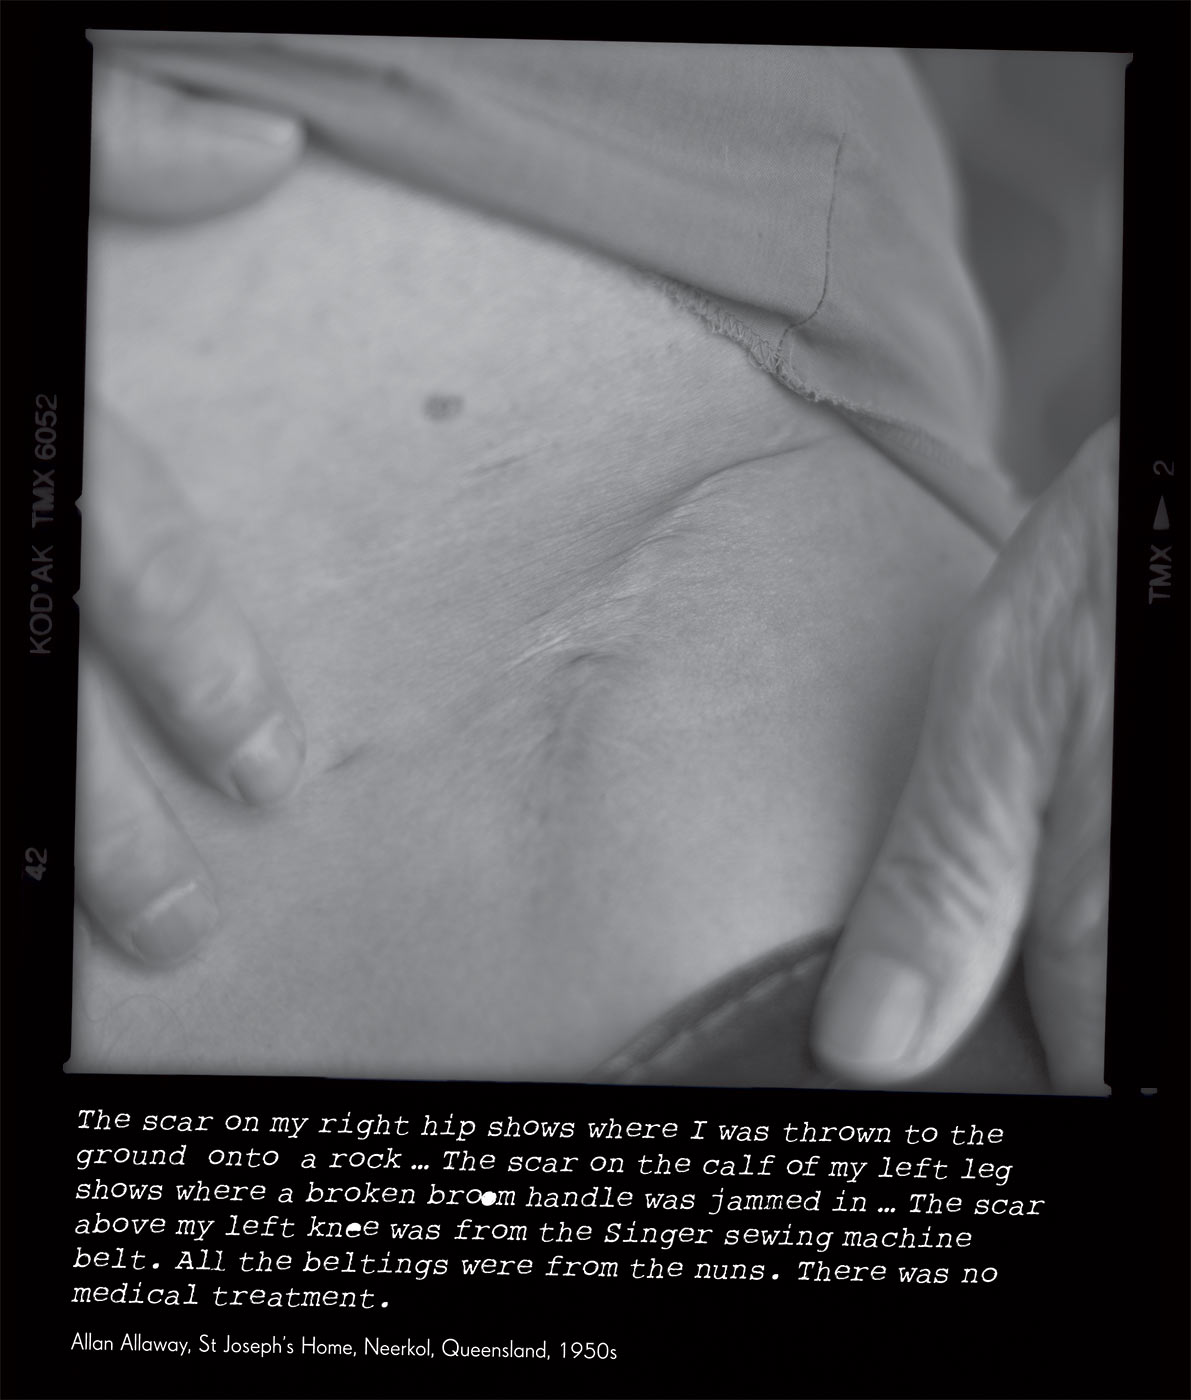 Black and white photo of a scar on a person's hip. The photo caption reads 'The scar on my right hip shows where I was thrown to the ground onto a rock ... The scar on the calf of my left leg shows where a broken broom handle was jammed in ... The scar above my left knee was from the Singer sewing machine belt. All the beltings were from the nuns. There was no medical treatment', attributed to 'Allan Allaway, St Joseph's Home, Neerkol, Queensland, 1950s'. - click to view larger image